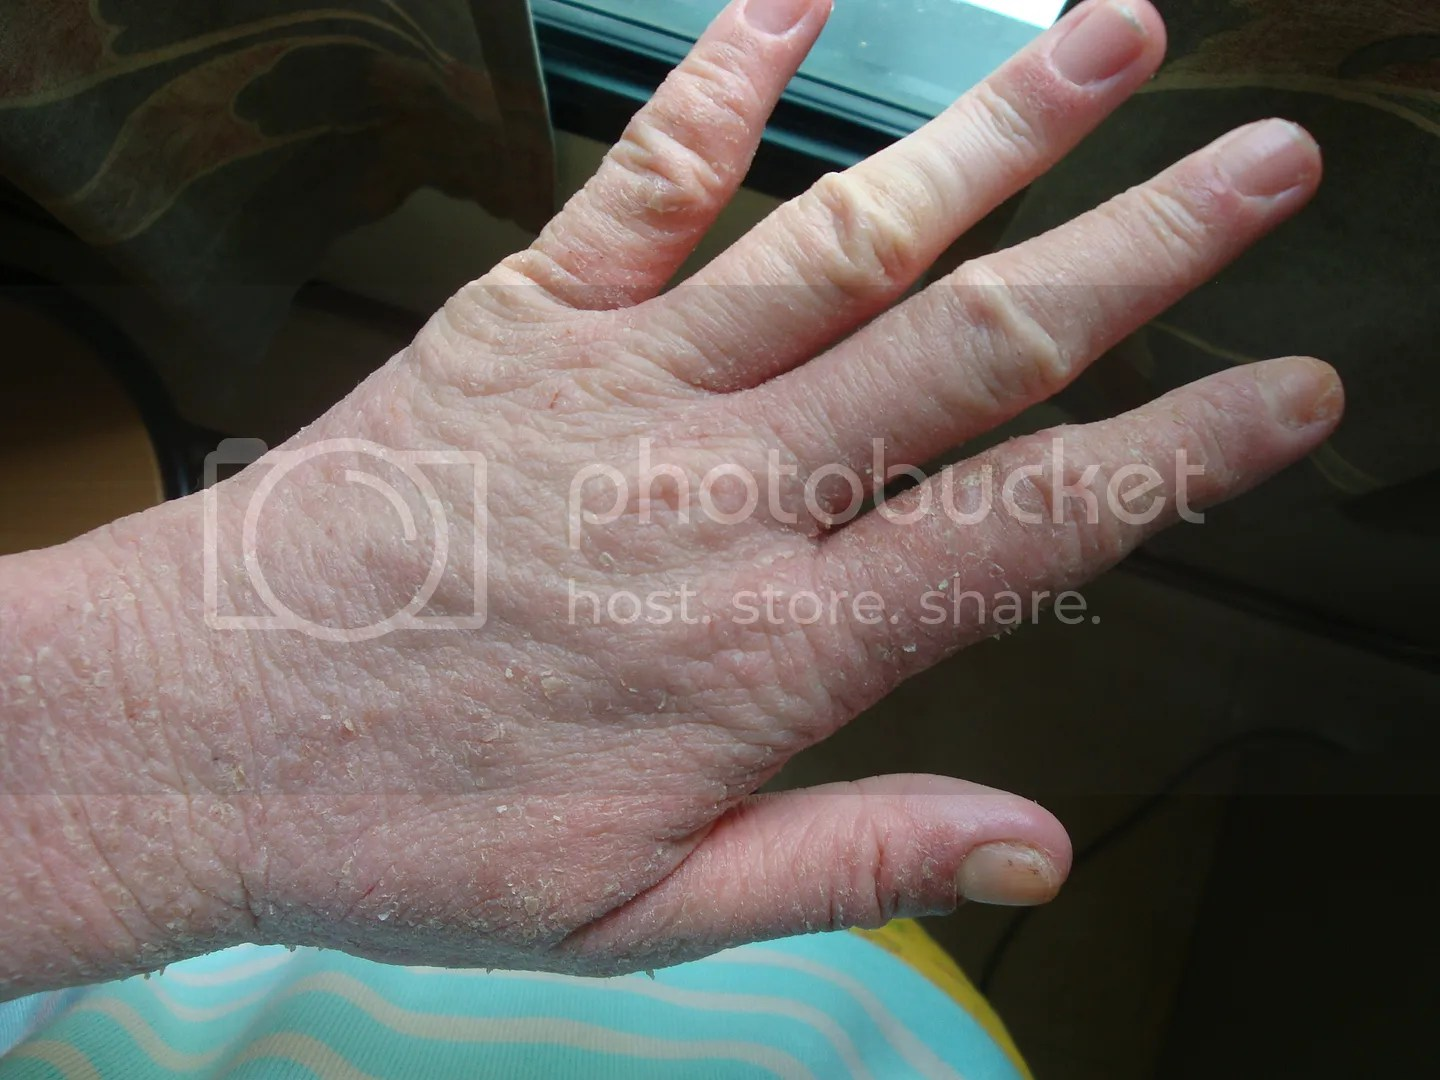 topical steroid withdrawal, swollen dry hand, deformed nails, red skin, not eczema